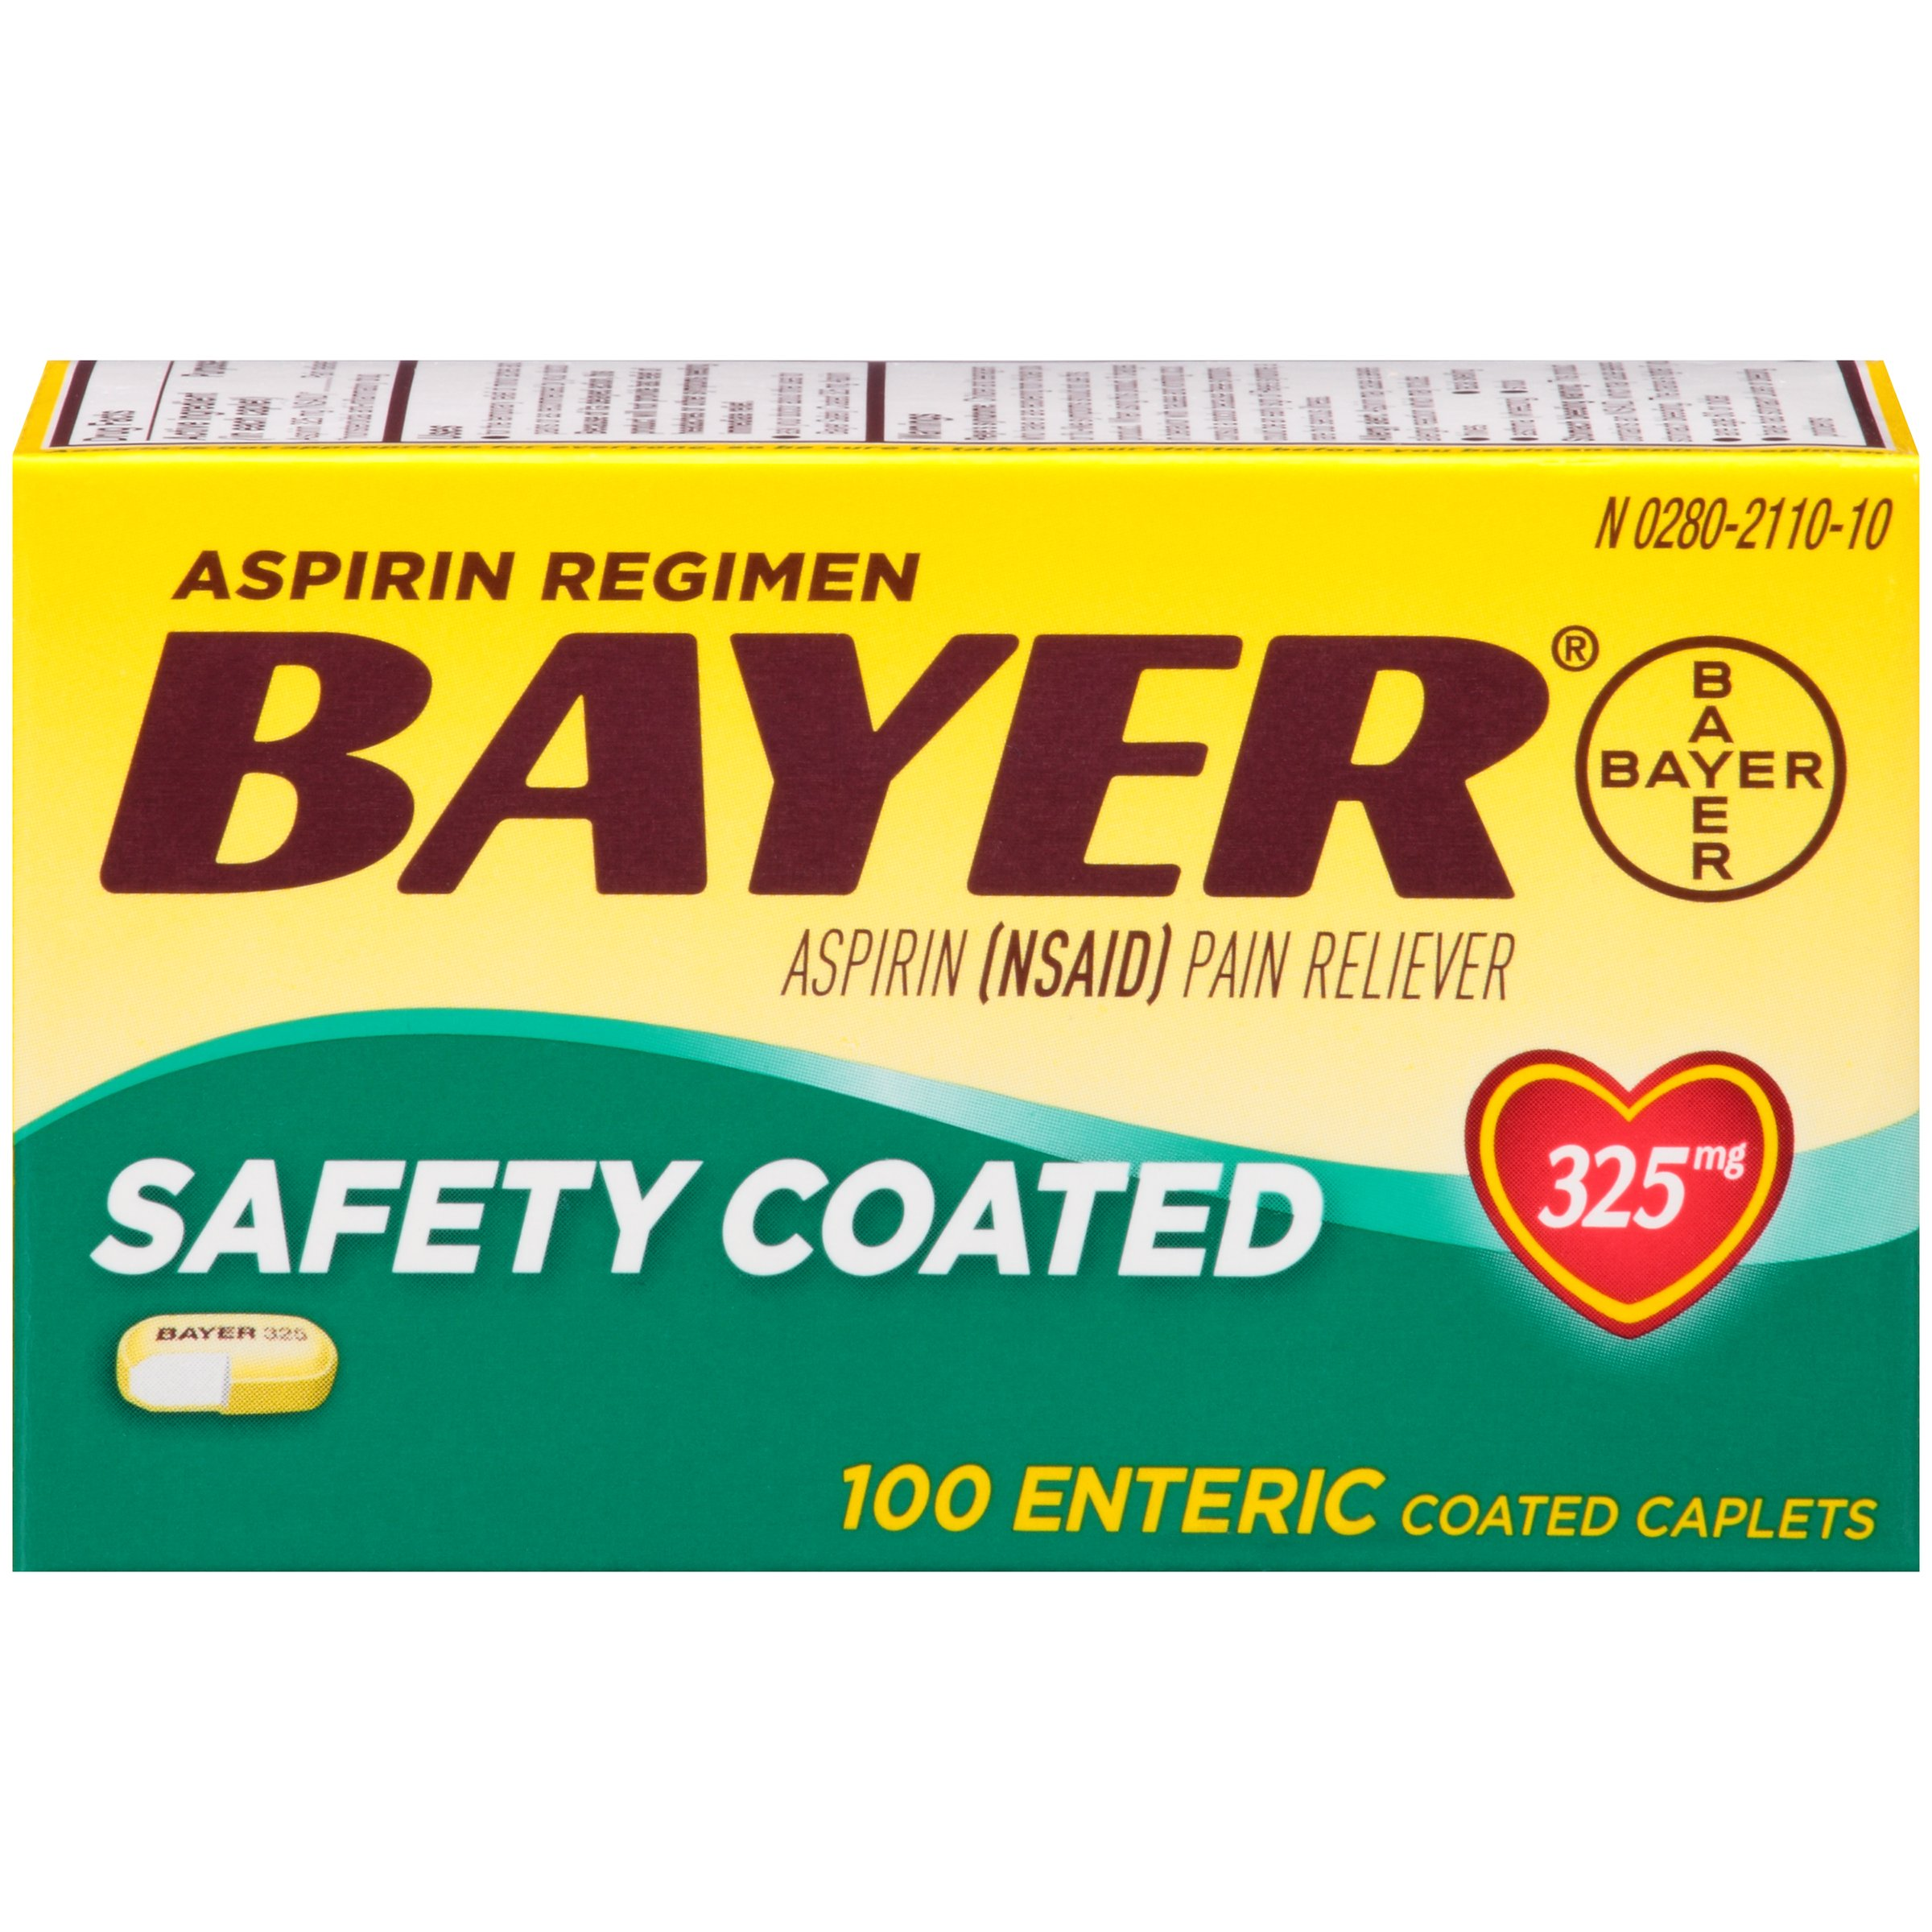 Bayer Safety Coated Aspirin 325 mg -100 Caplets, Pack of 5 by Bayer